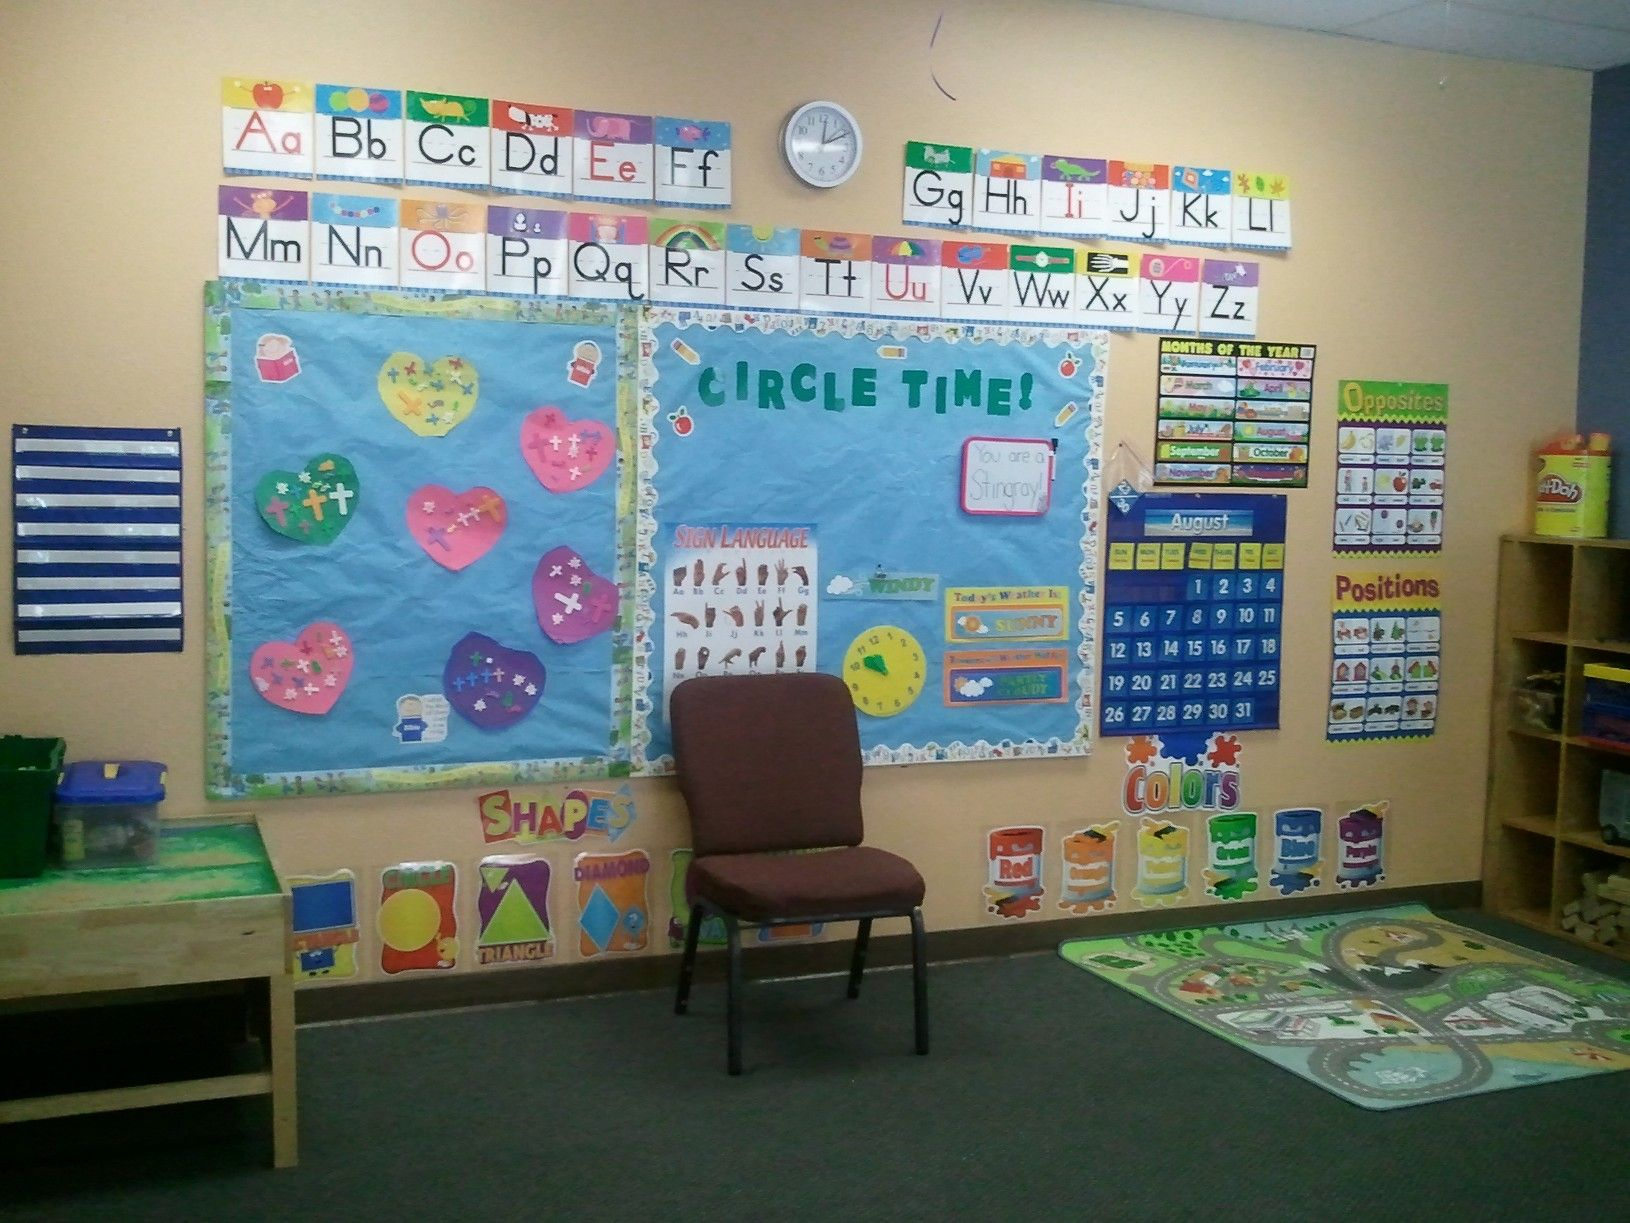 Our Circle Time Board Erica Wuestewald